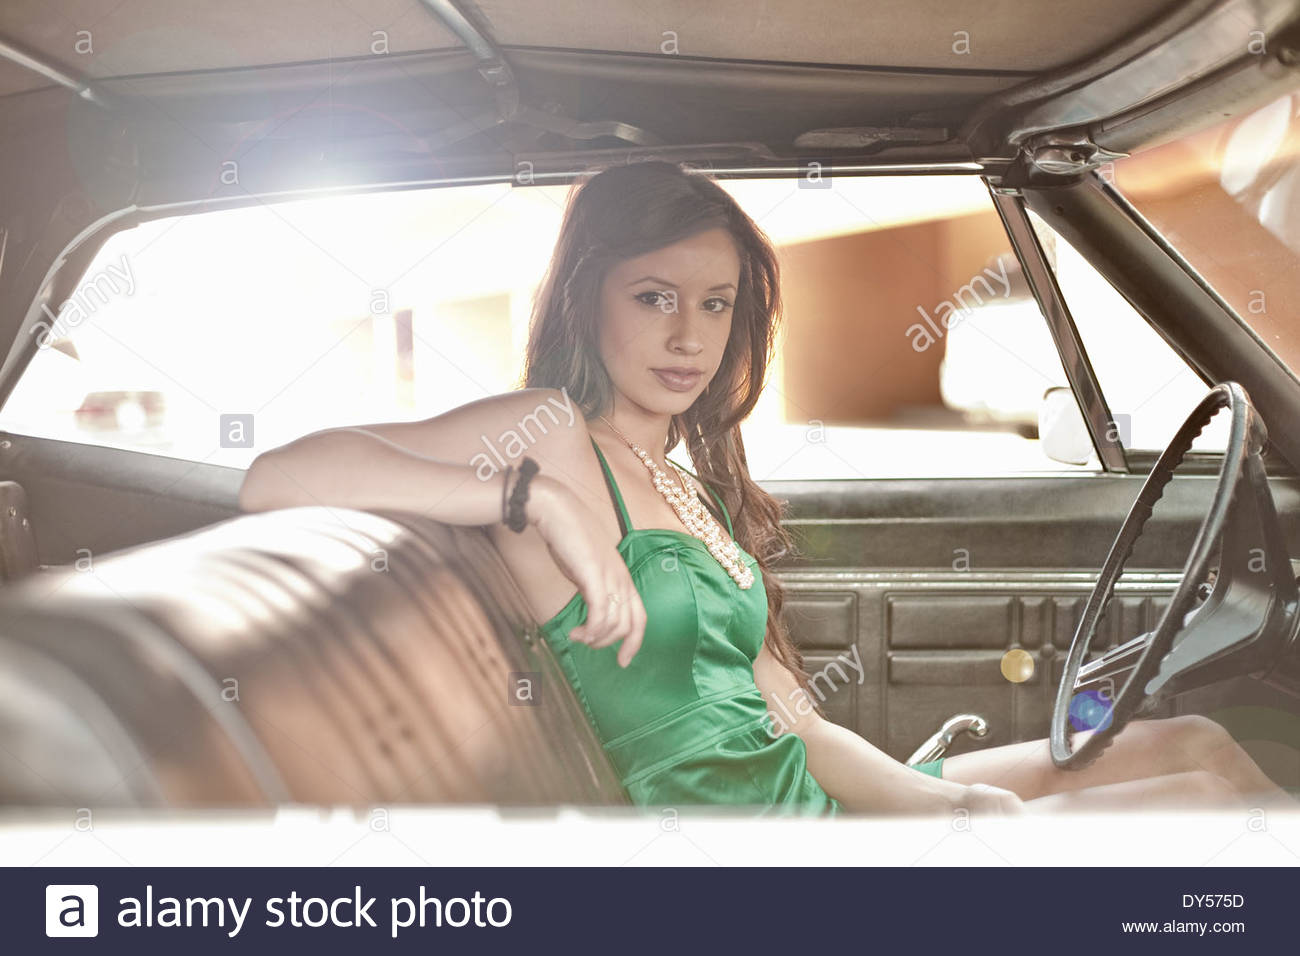 Portrait of sultry young woman waiting in car - Stock Image